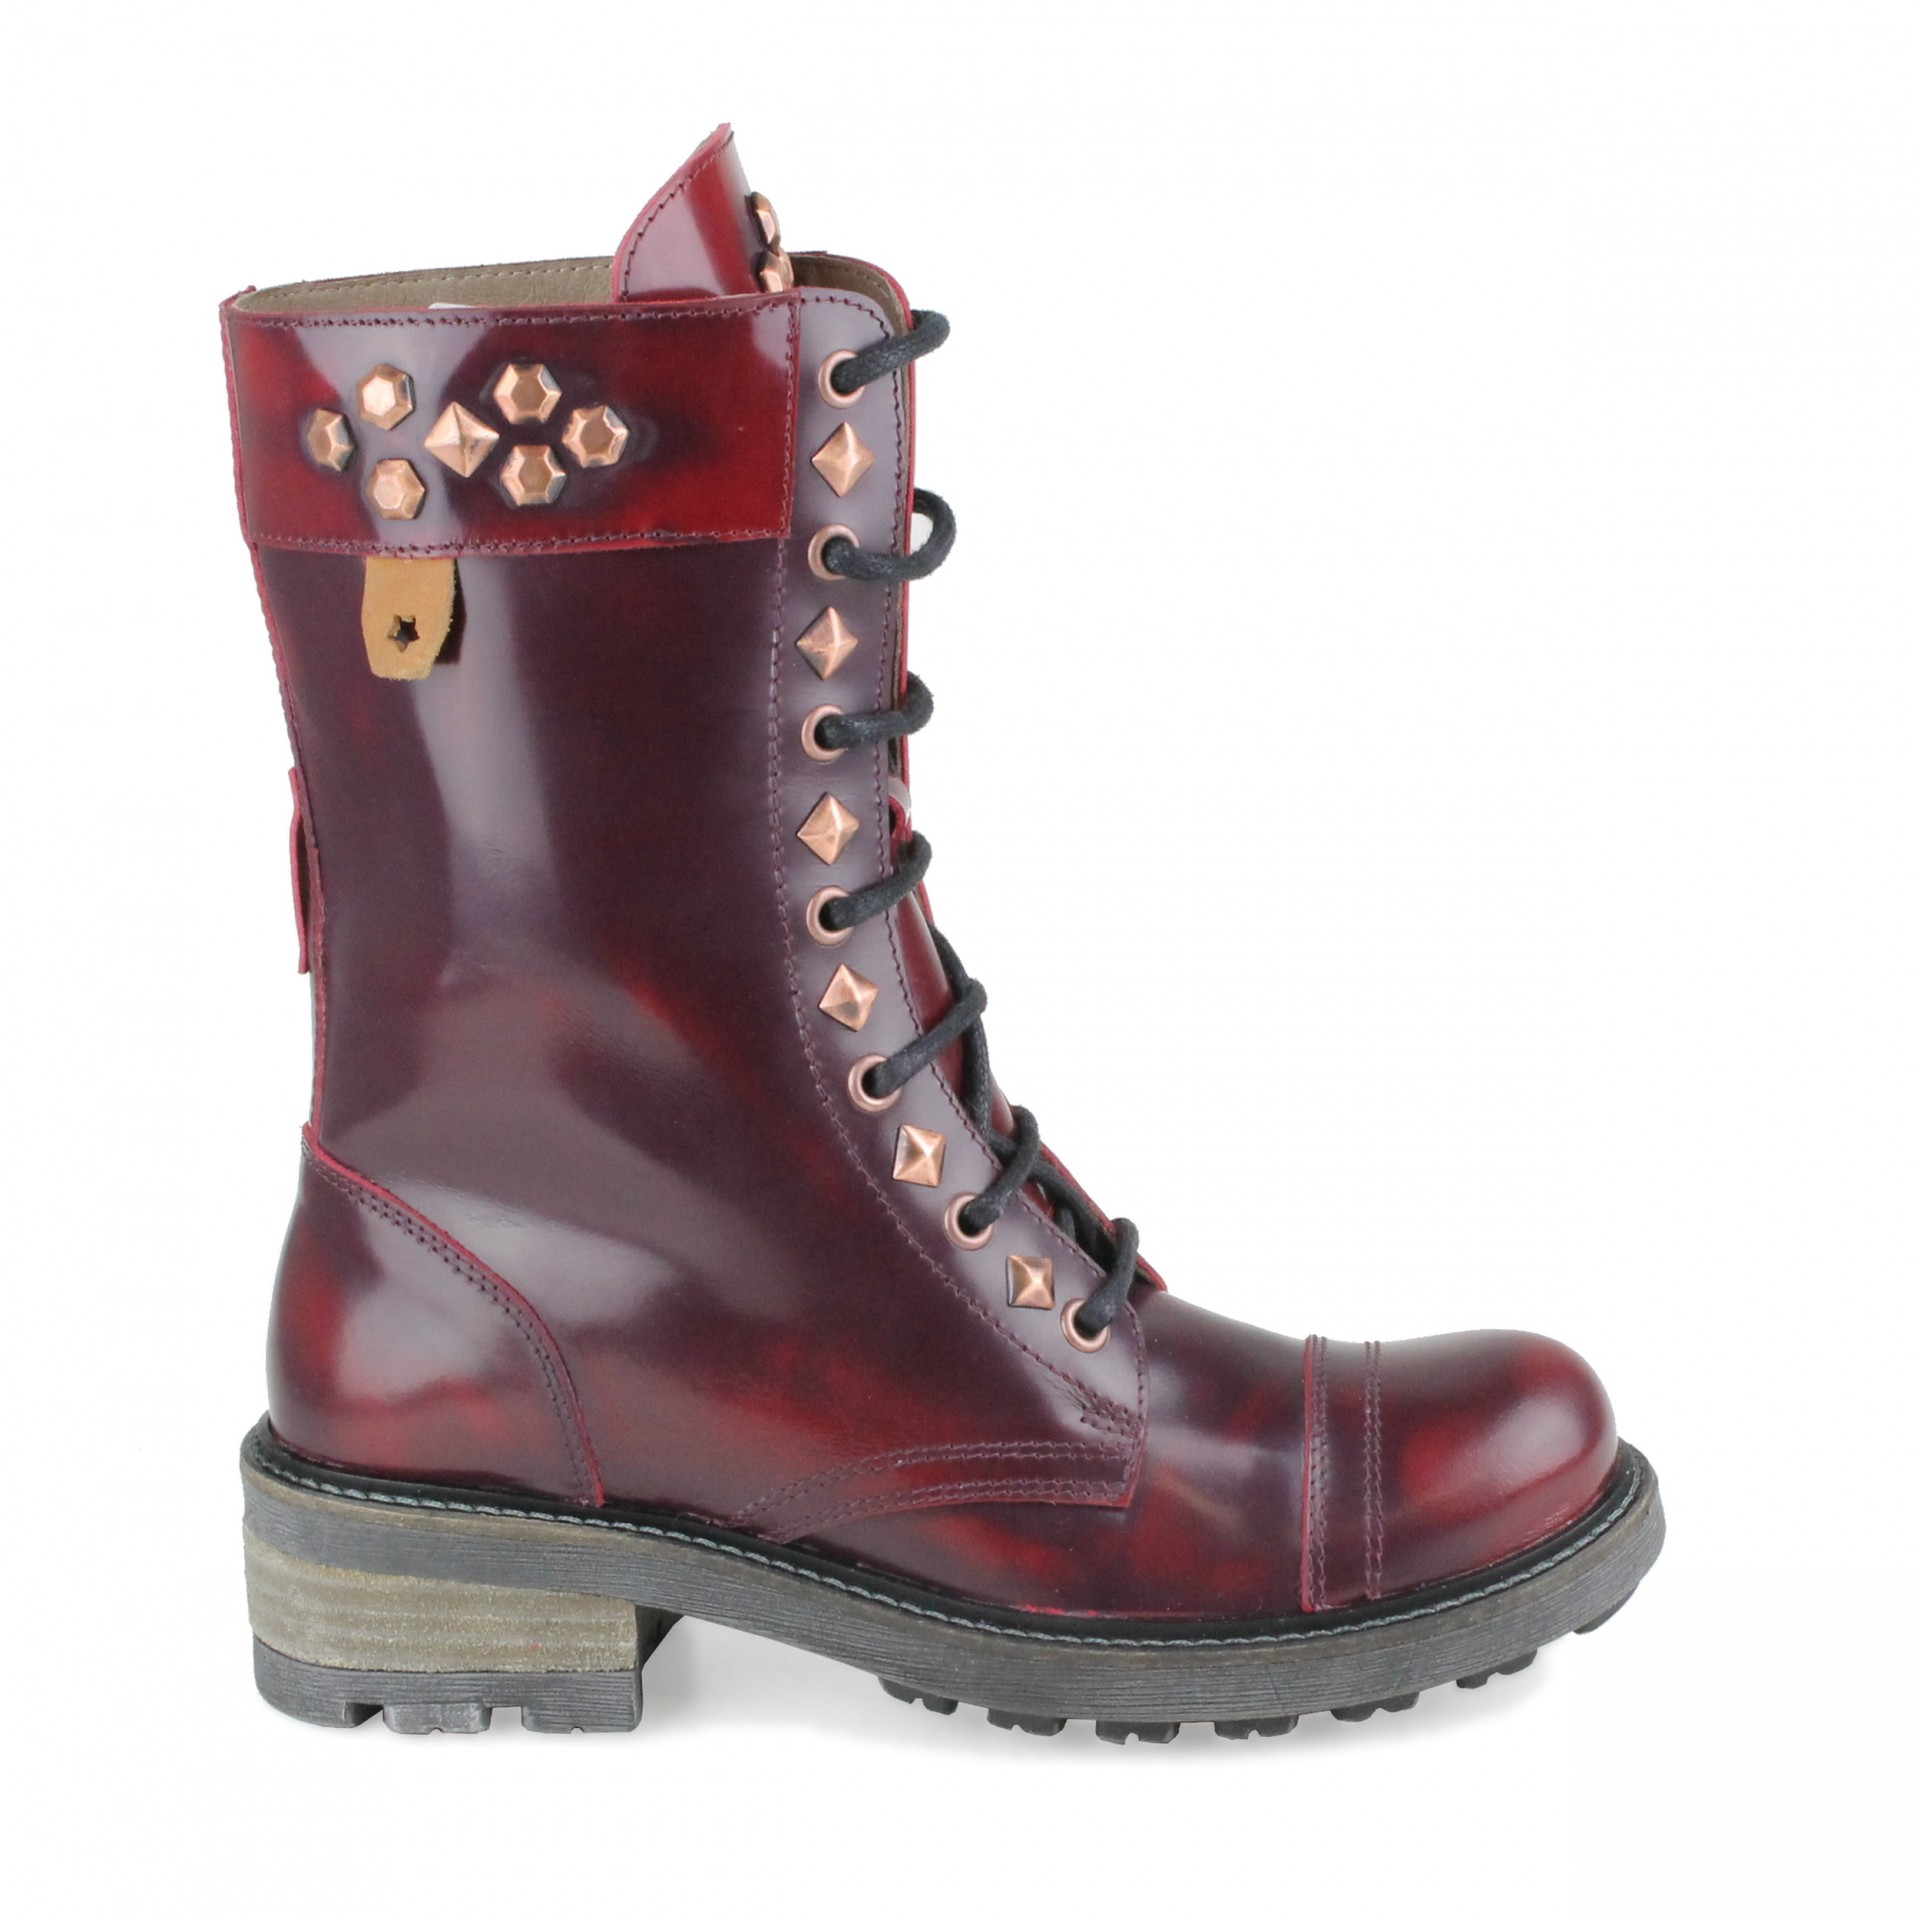 BOTA CUBANAS ESCAPE500 CHERRY